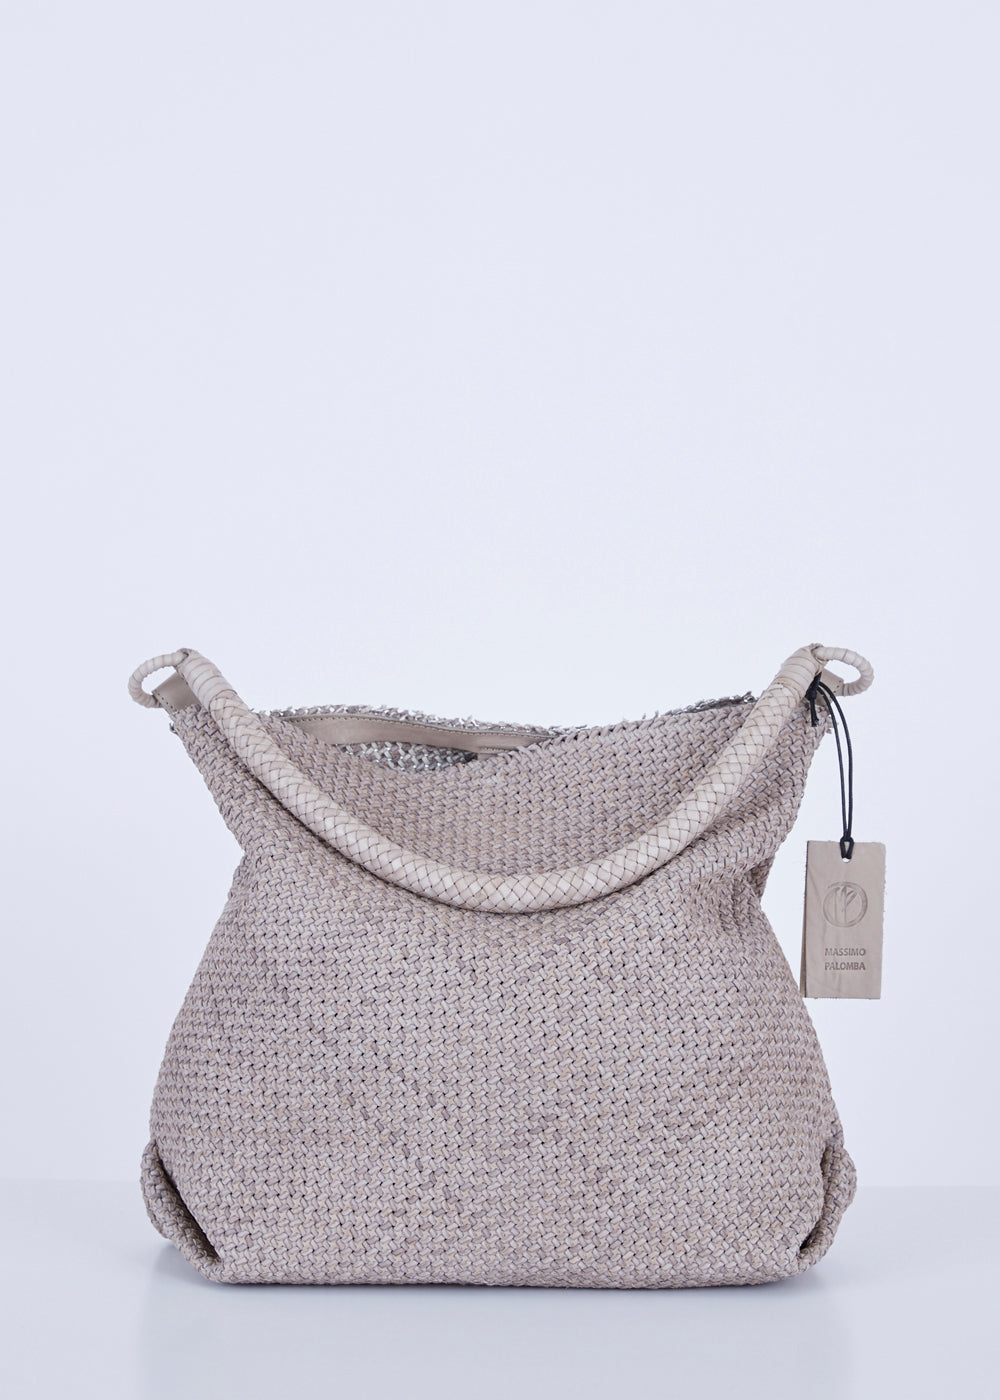 Massimo Palomba Calypso Woven Shoulder Bag